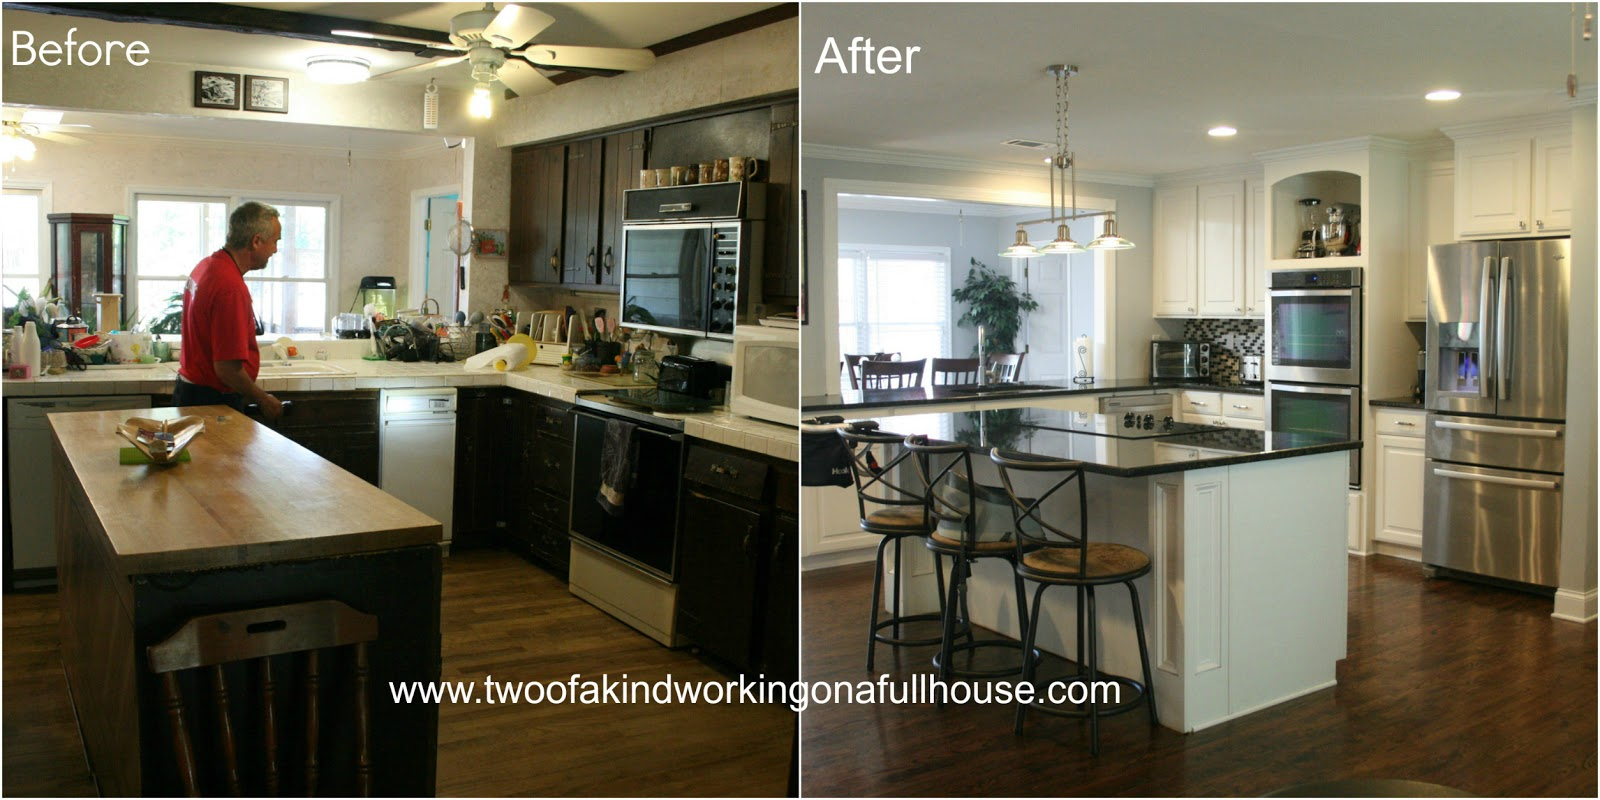 Kitchen Remodel Before And After Older Kitchen Remodel Ideascottage Kitchen Remodel Idea With Old